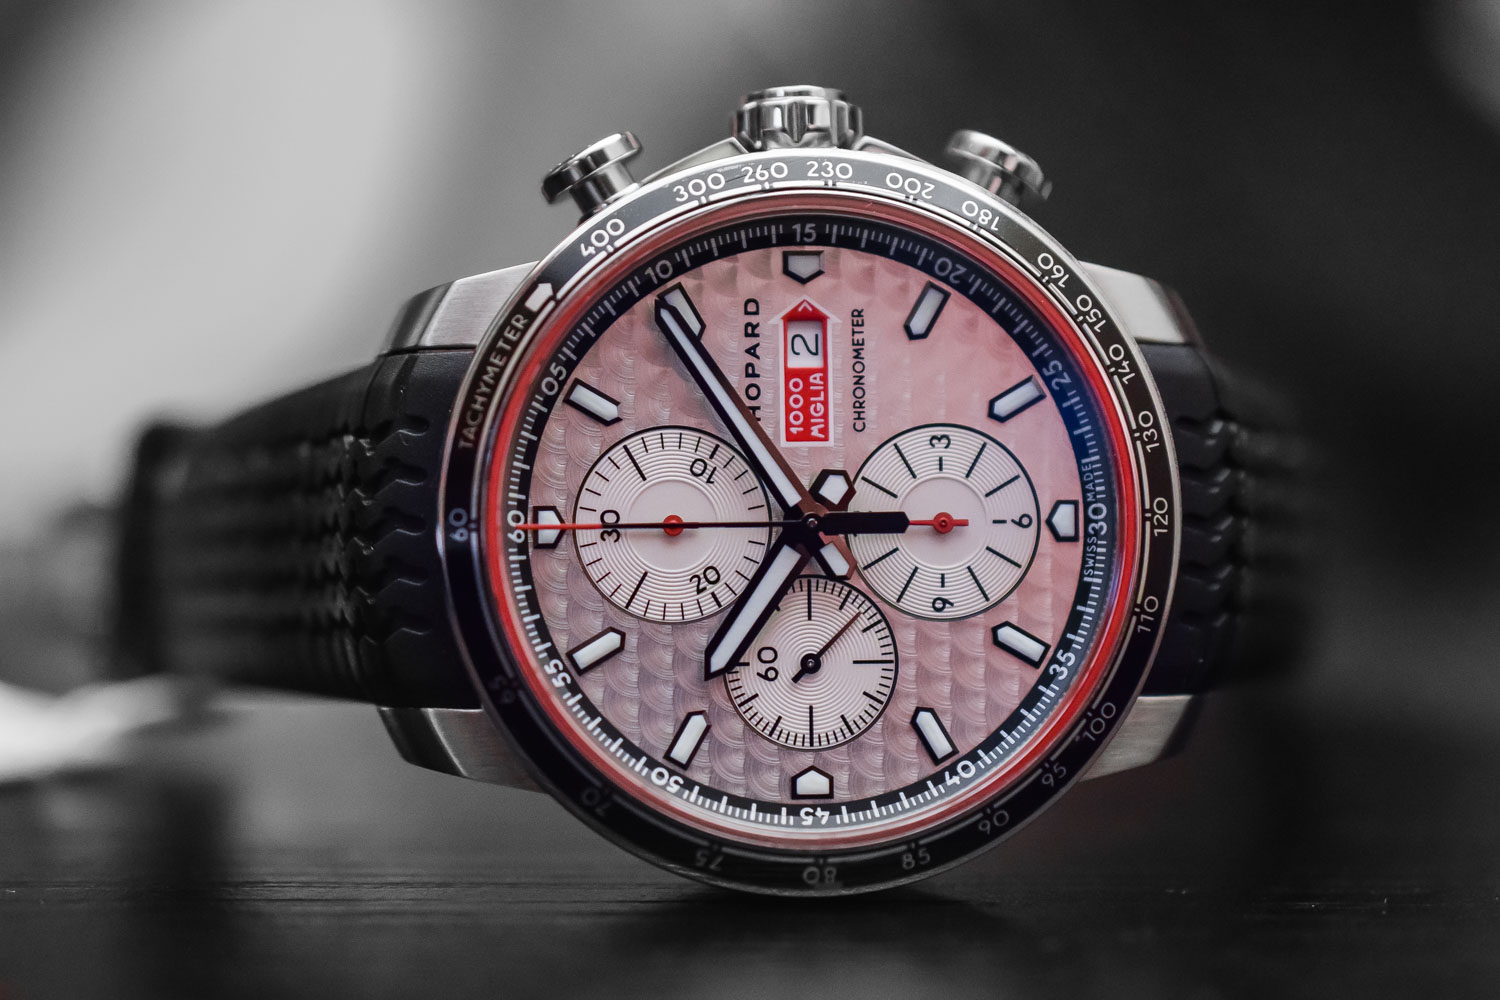 an or watch one goes between cars exemplary manufacturers formula have way williams guide oris watches motor auto the back and collection racing personalities teams association partnerships